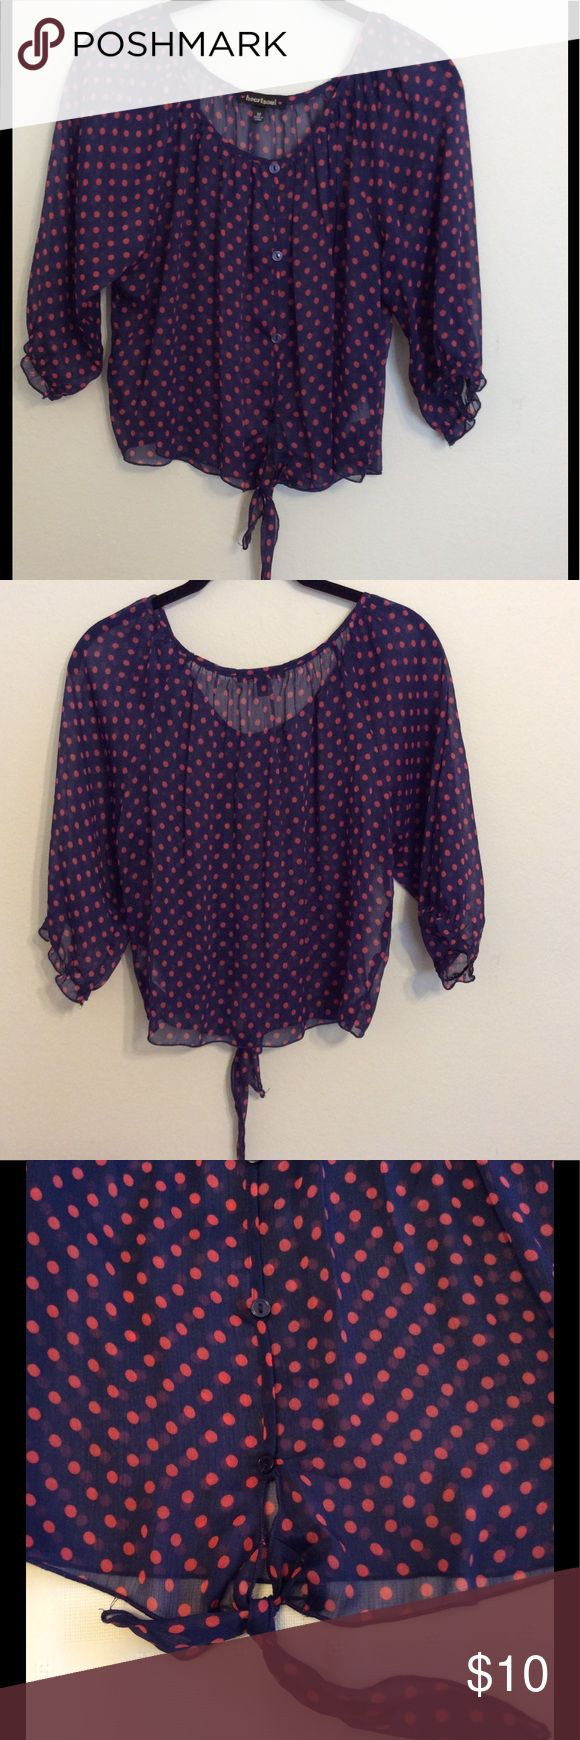 "Sheer peasant top.  $6 with bundle Navy and pink polka dot.  Elbow length (16"") sleeves with gentle elastic to keep them at the length most comfortable for you.  Slip over blouse with decorative buttons down the front and self tie. HeartSoul Tops Blouses"